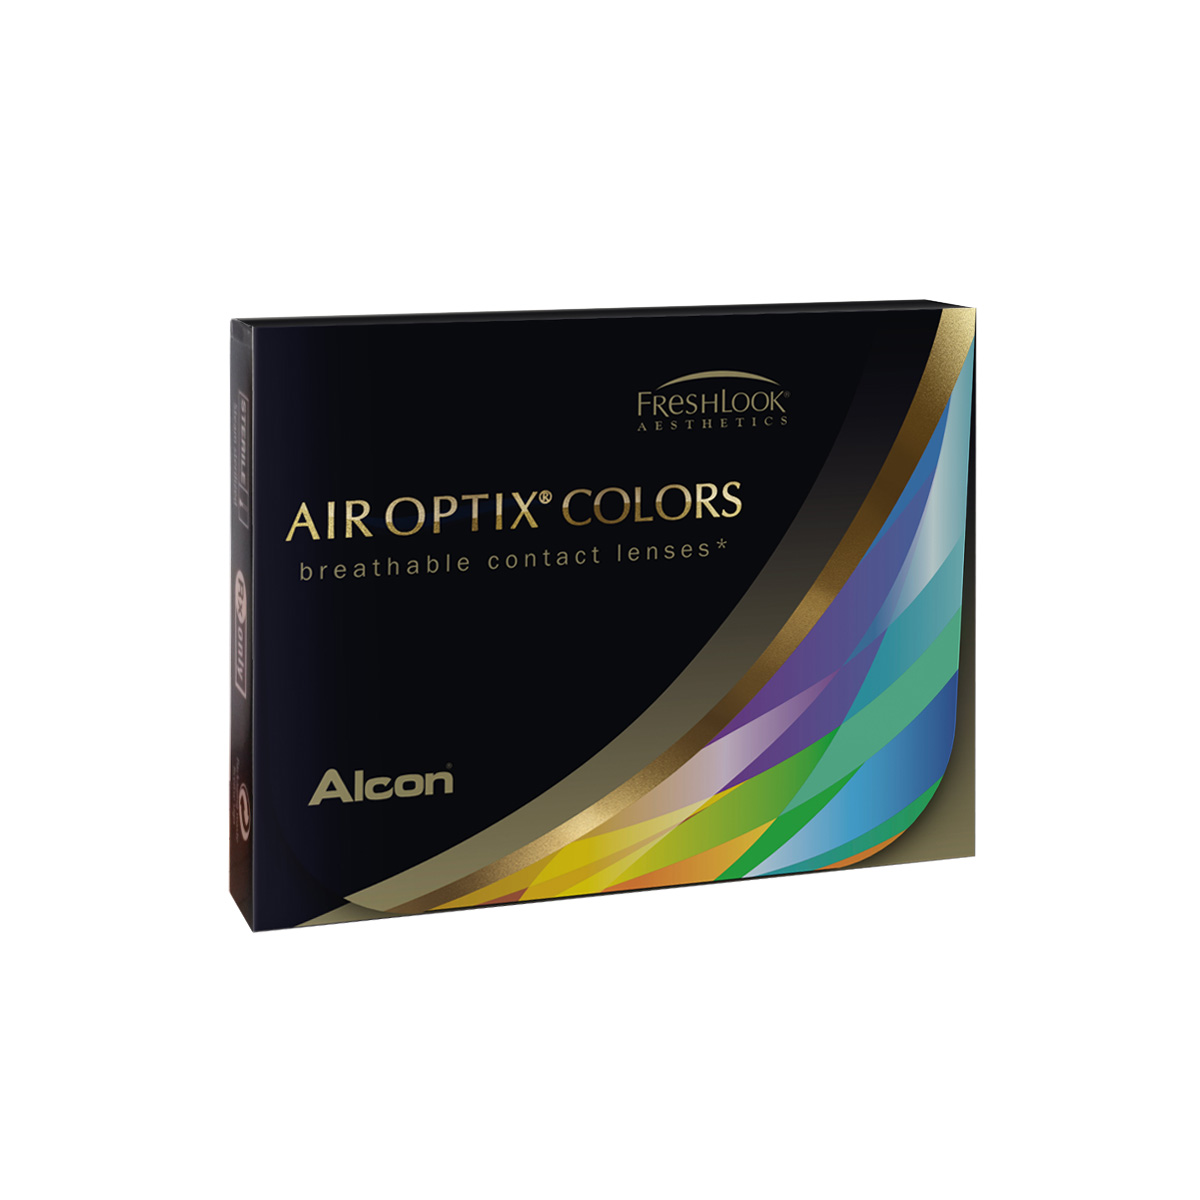 Image of Air Optix Colors 2 lenses